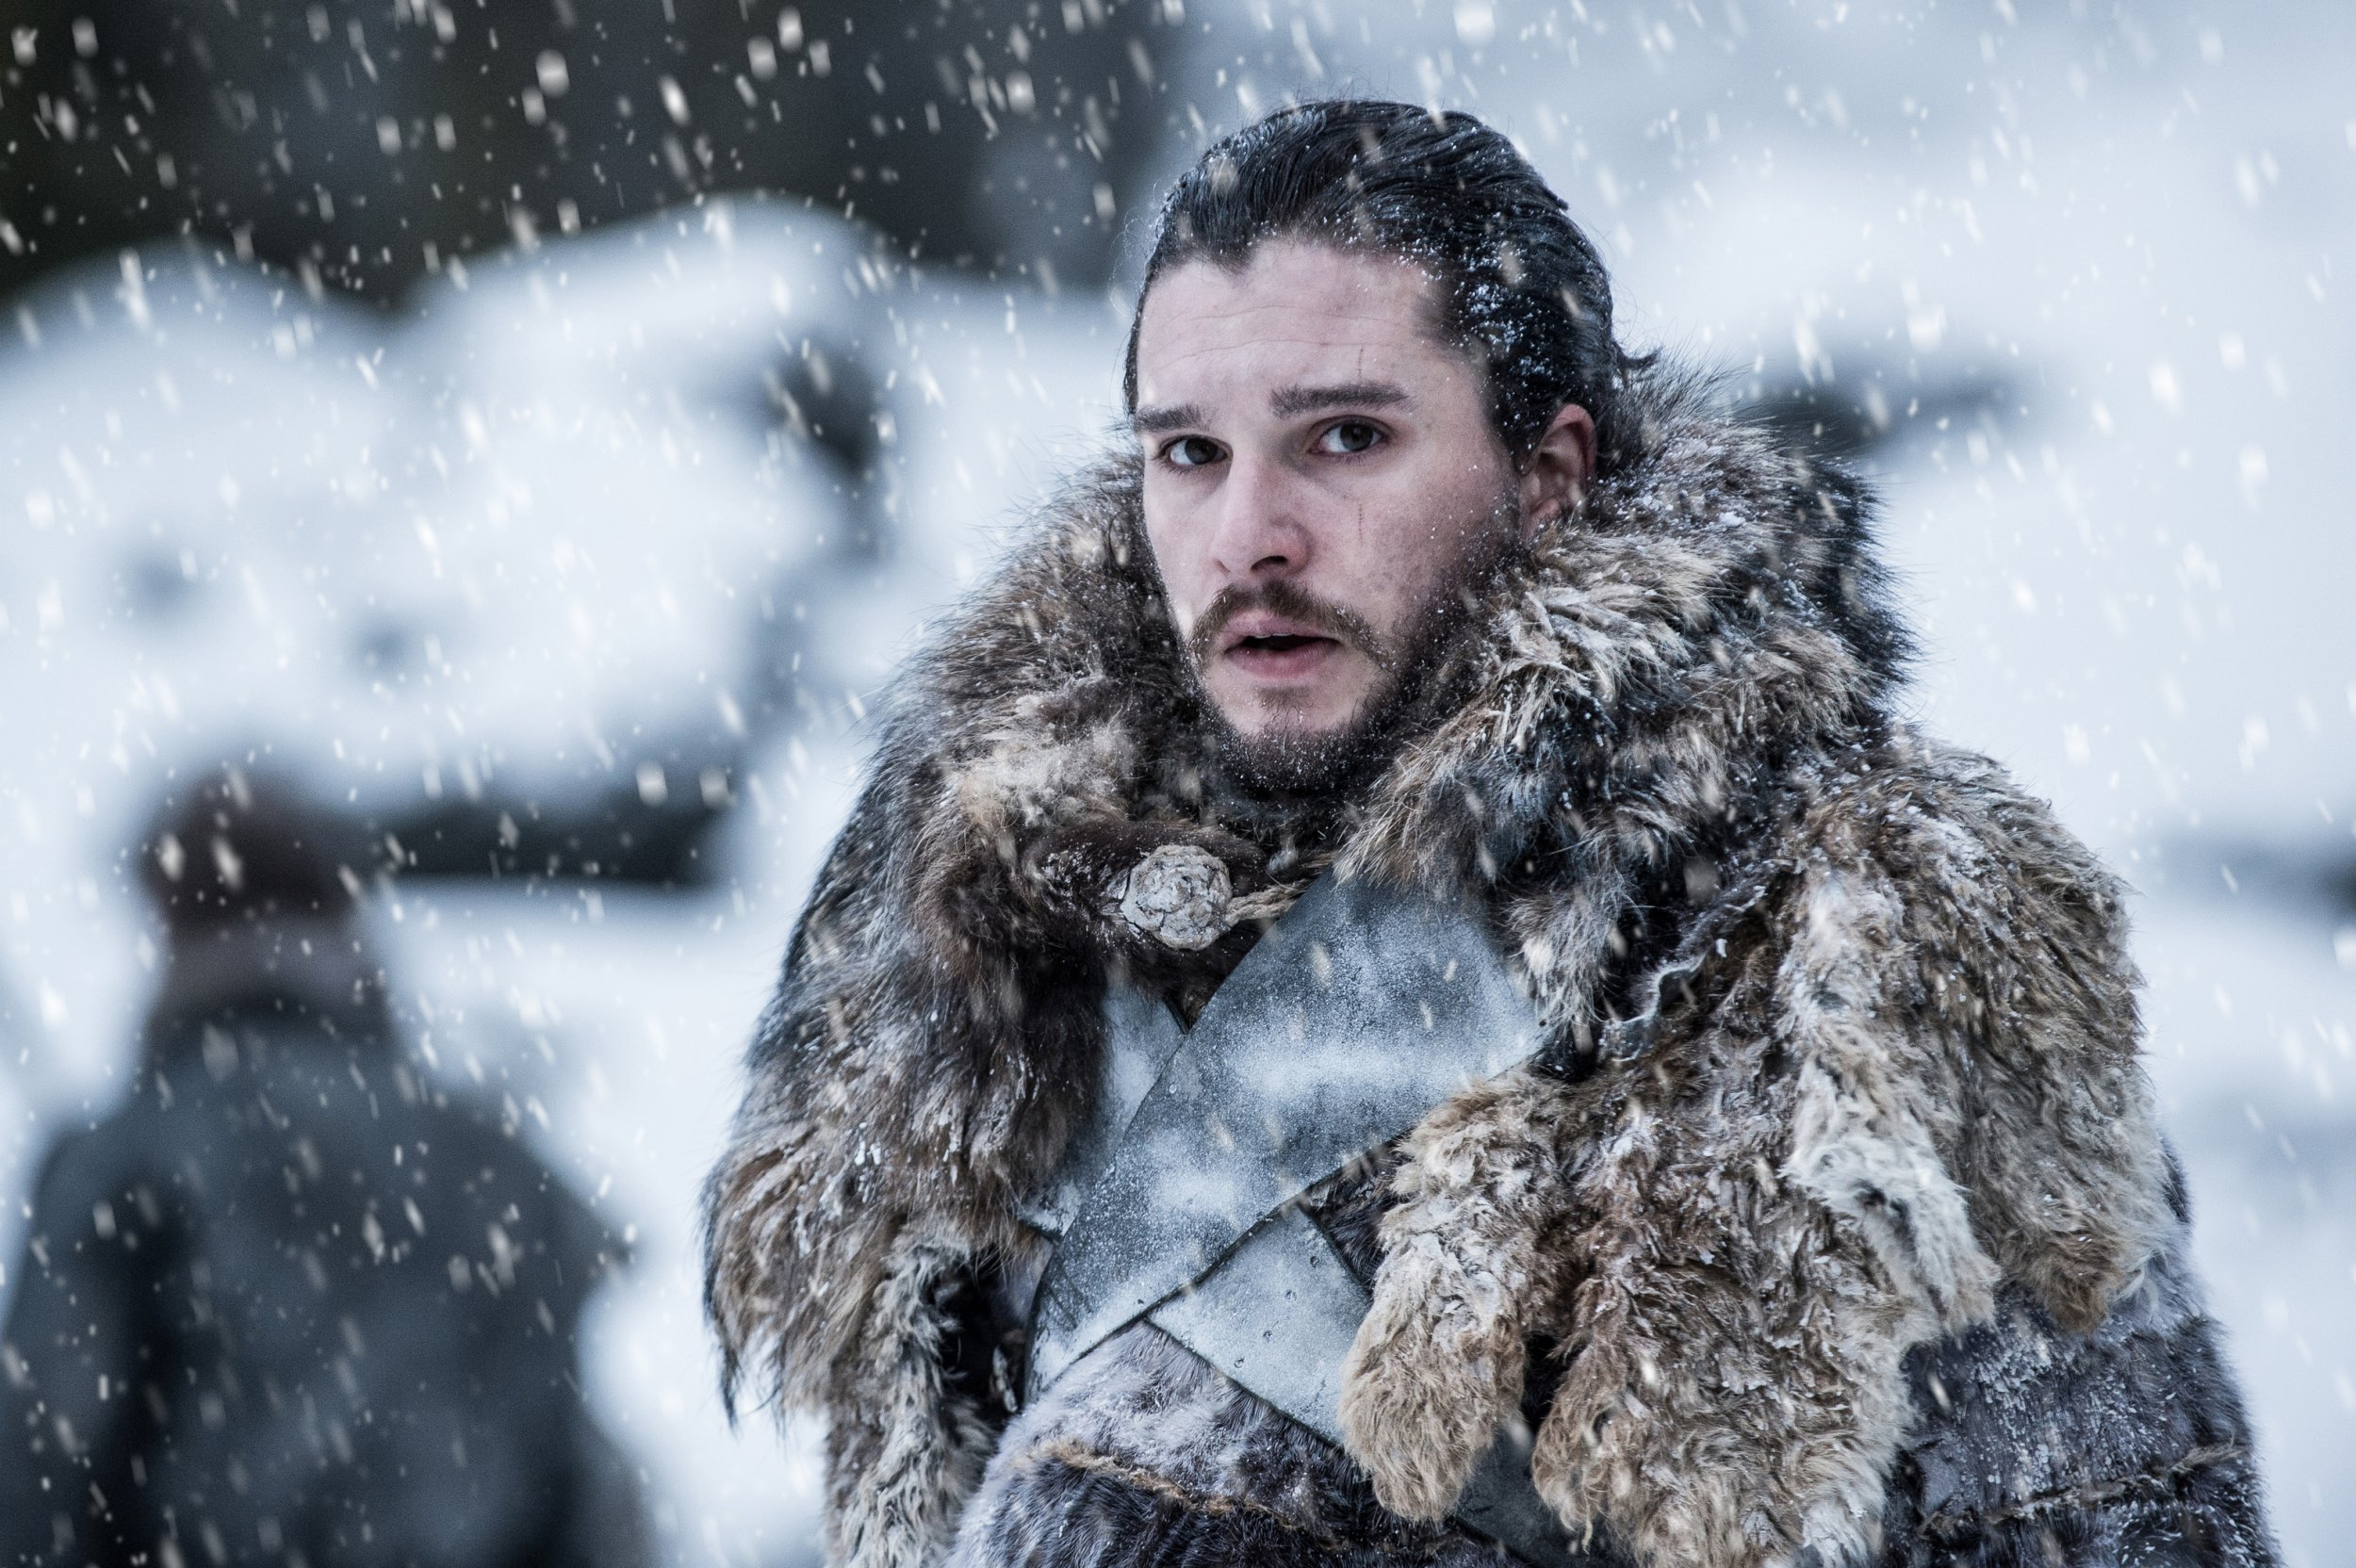 Who are Jon Snow's parents in Game of Thrones?